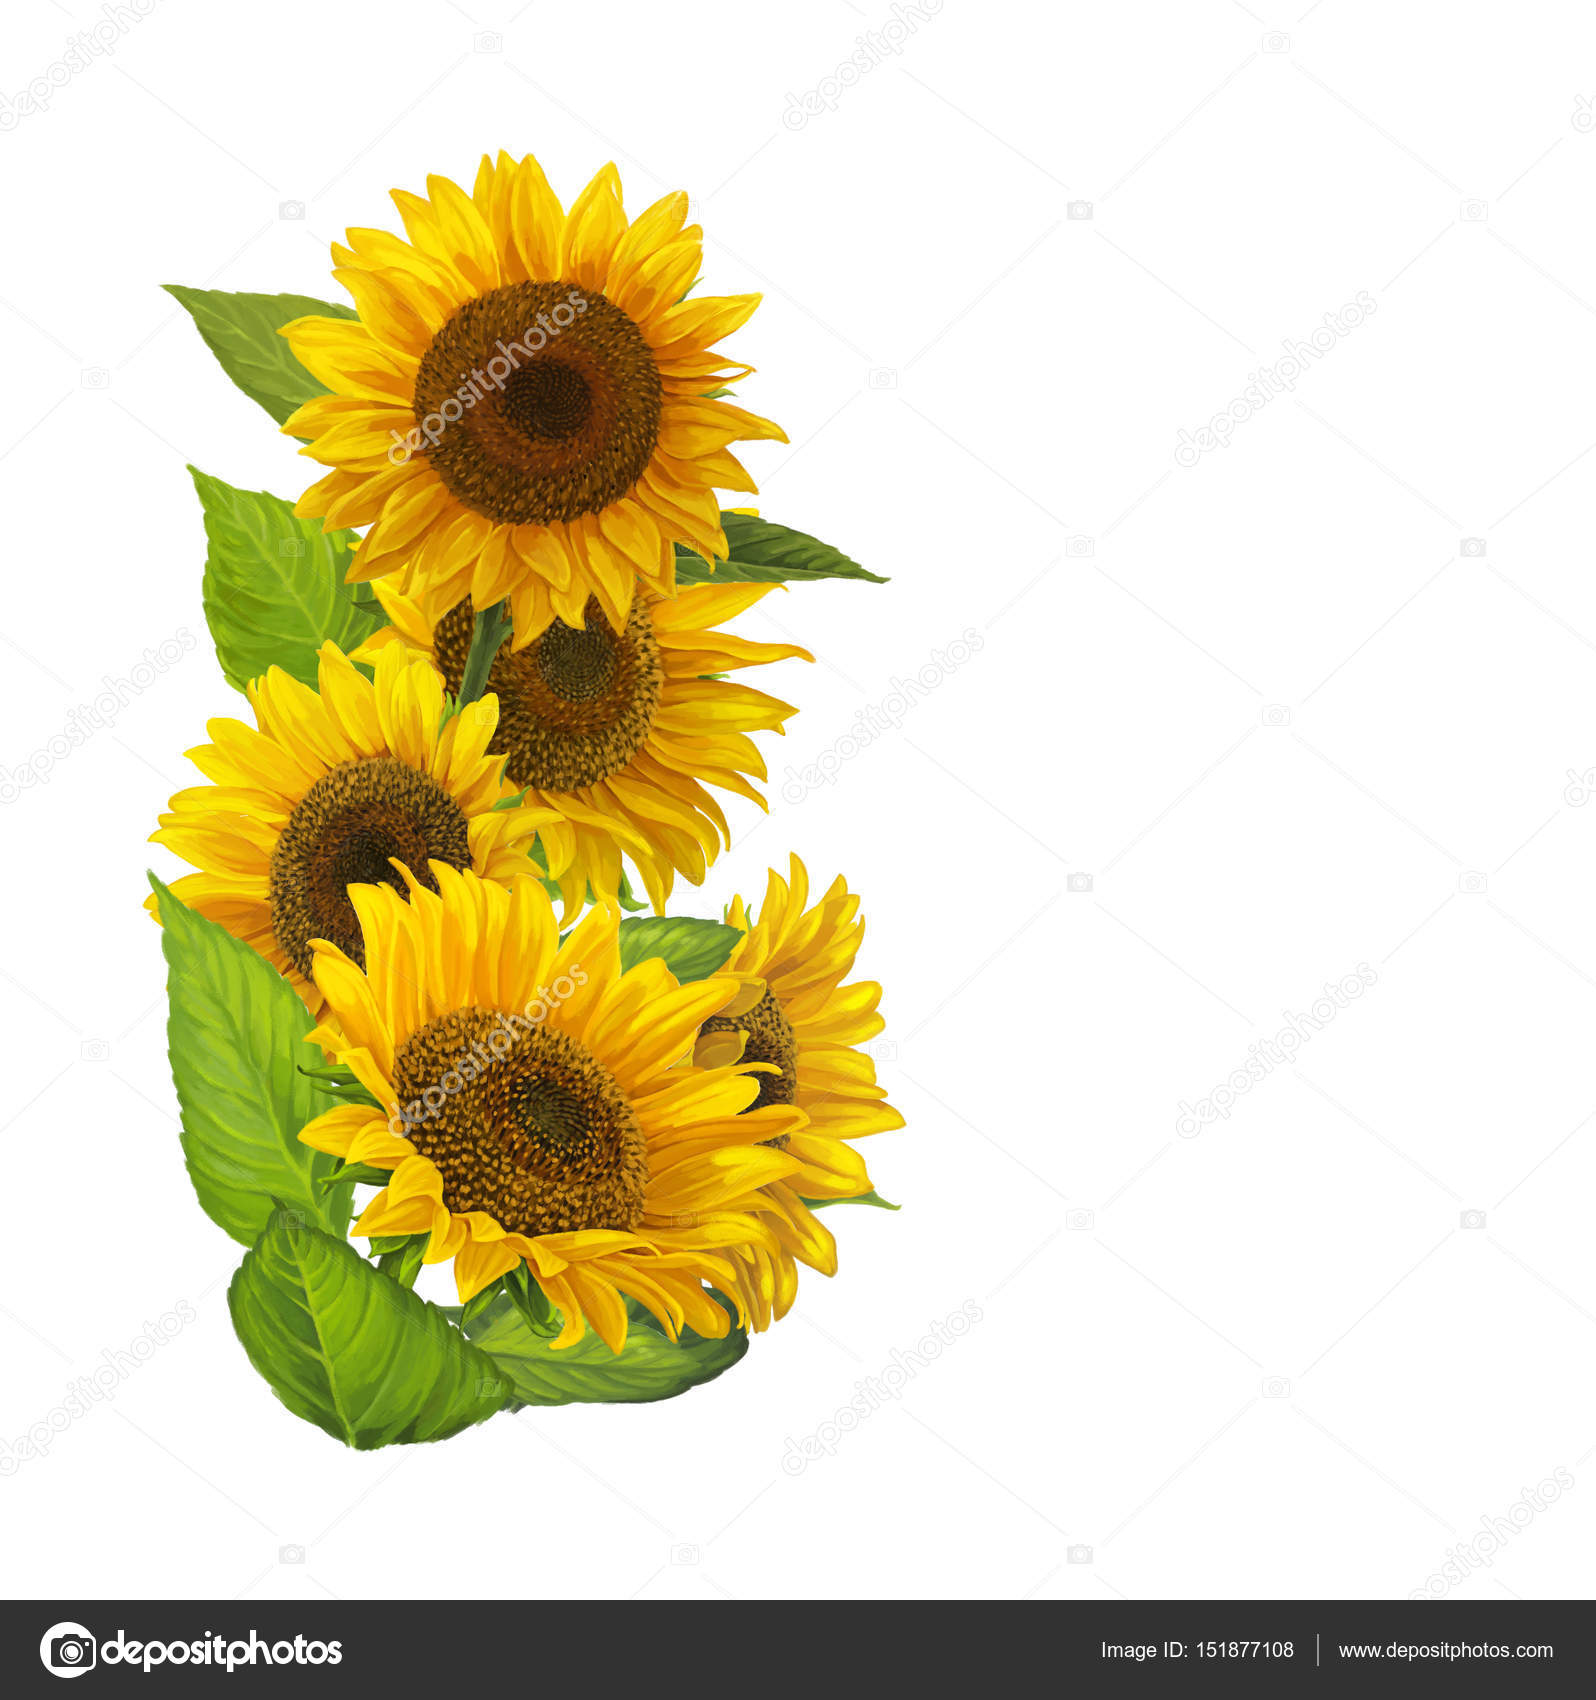 Cartoon Border With Sunflowers On White Background Photo By Agaes8080